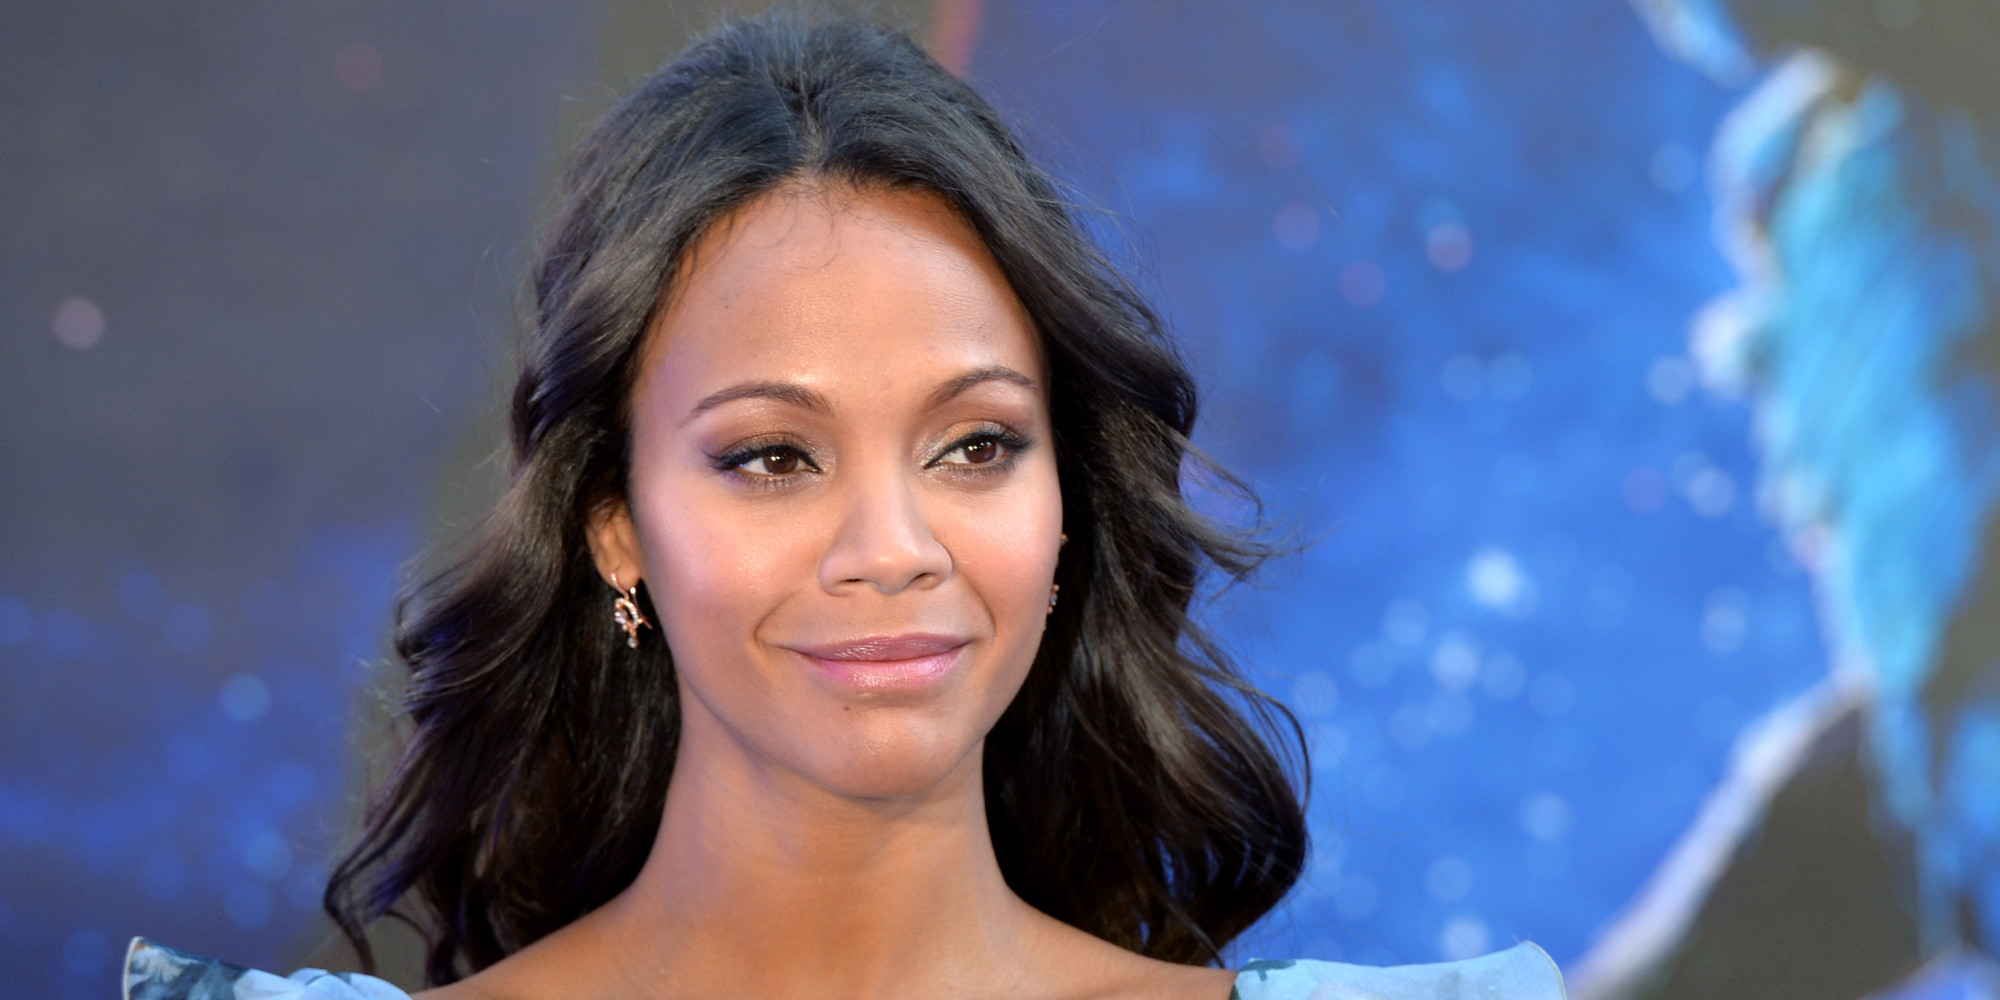 Zoe Saldana Defends Britney Spears After Auto-Tune Controversy